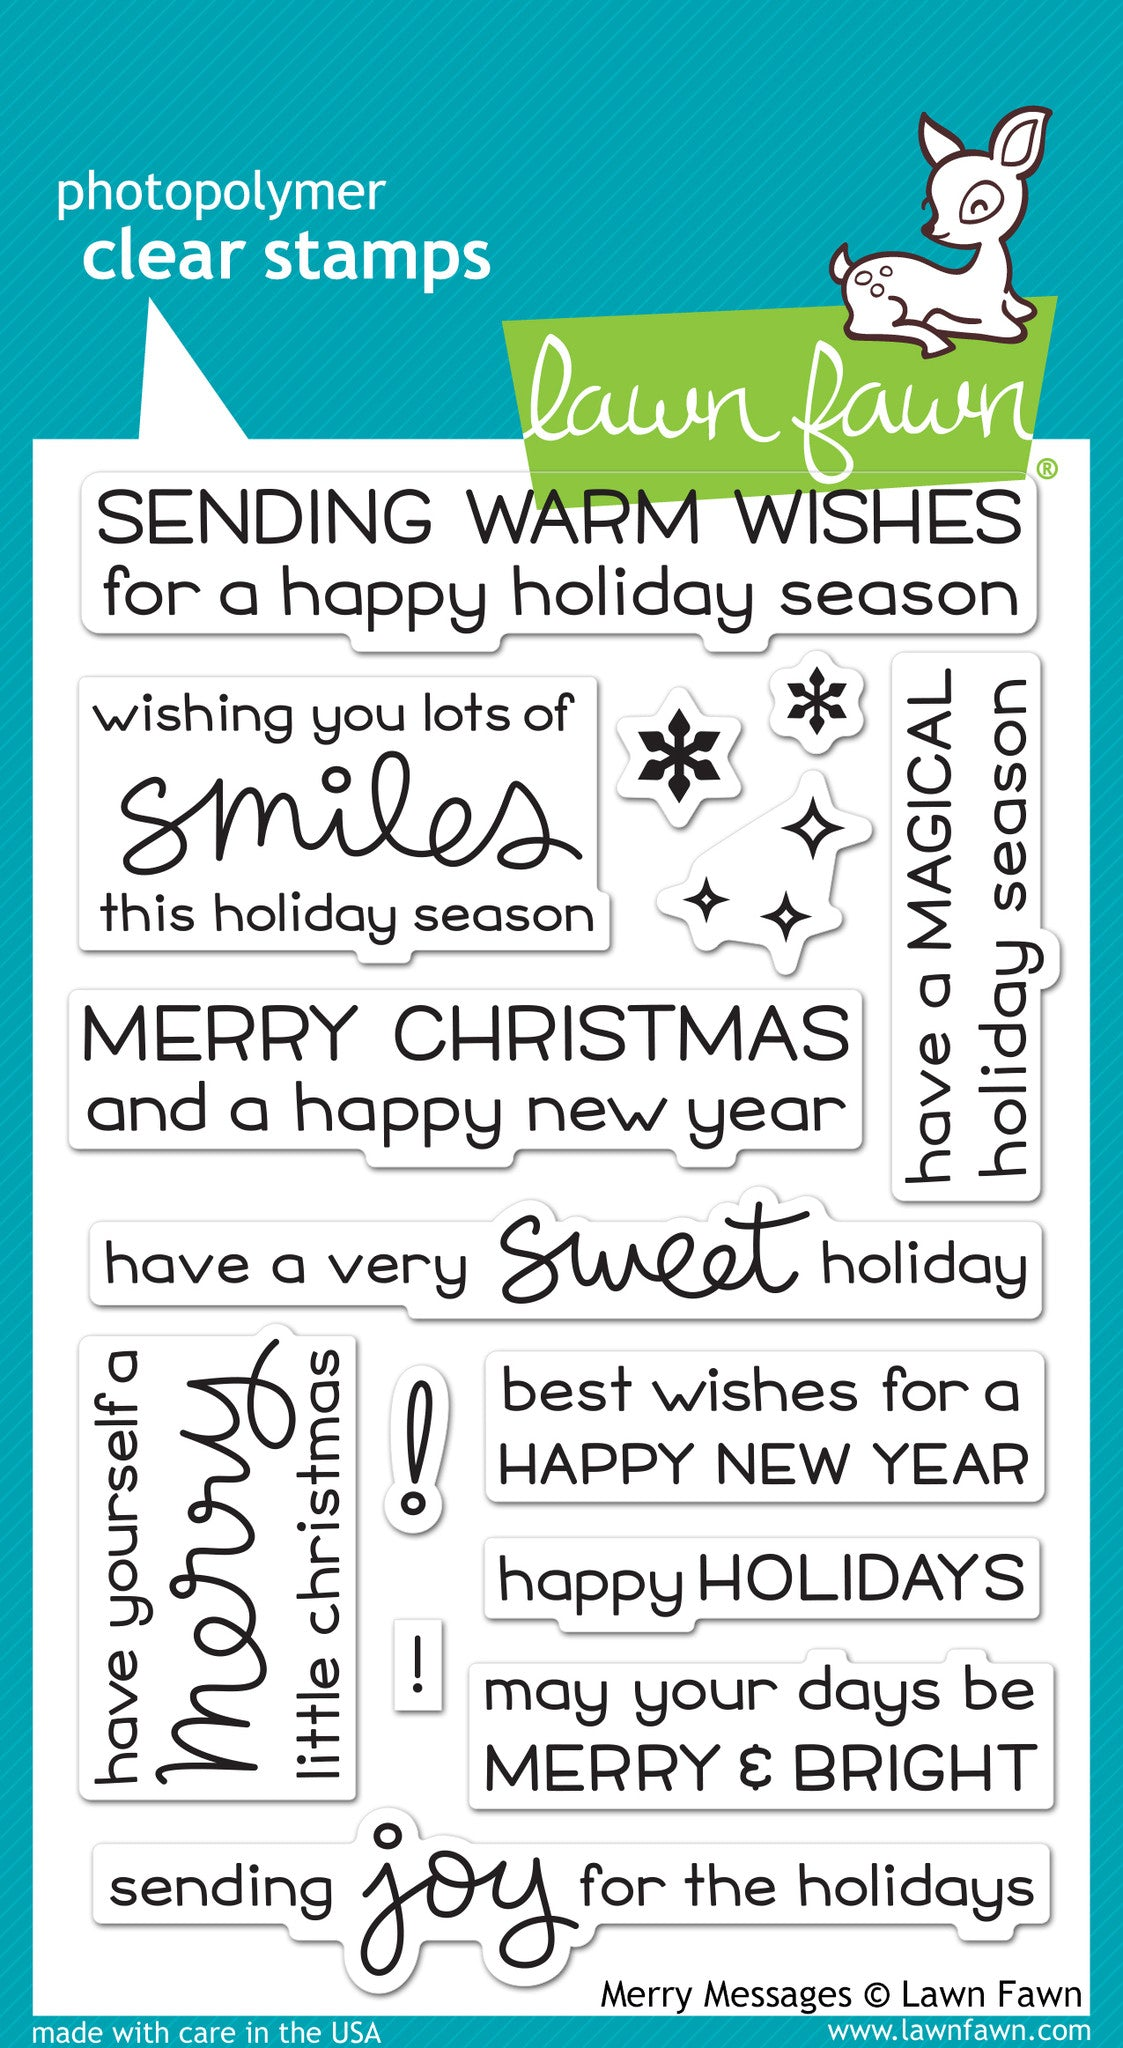 merry messages